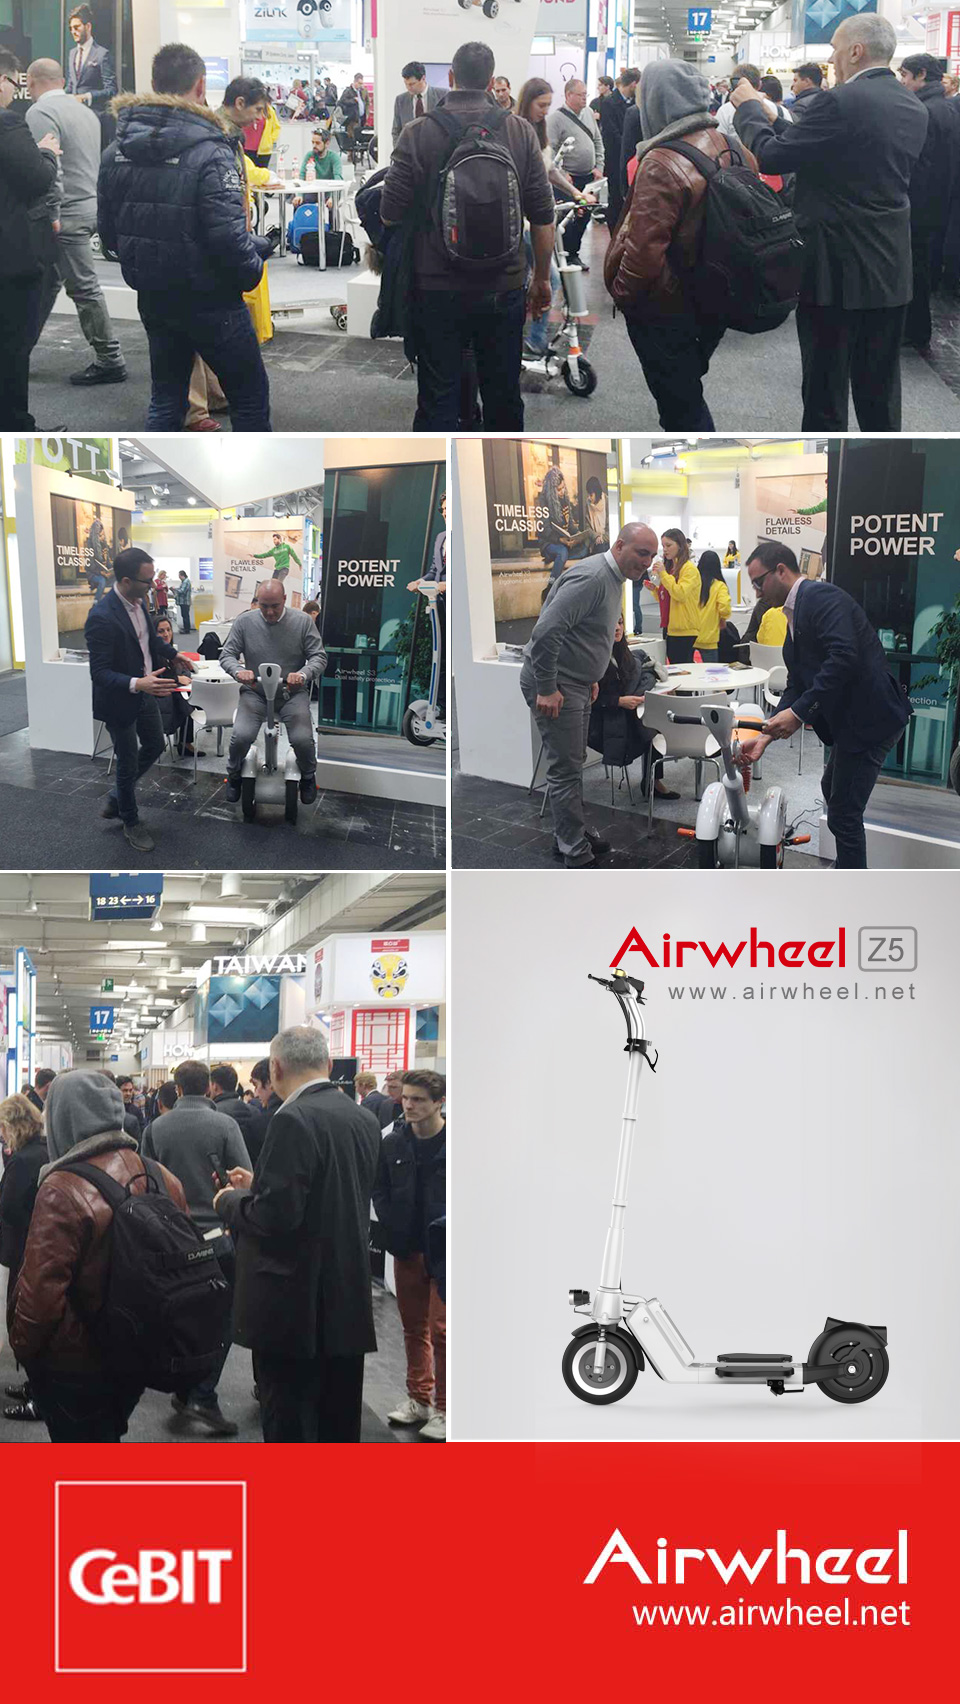 cebit-airwheel-1